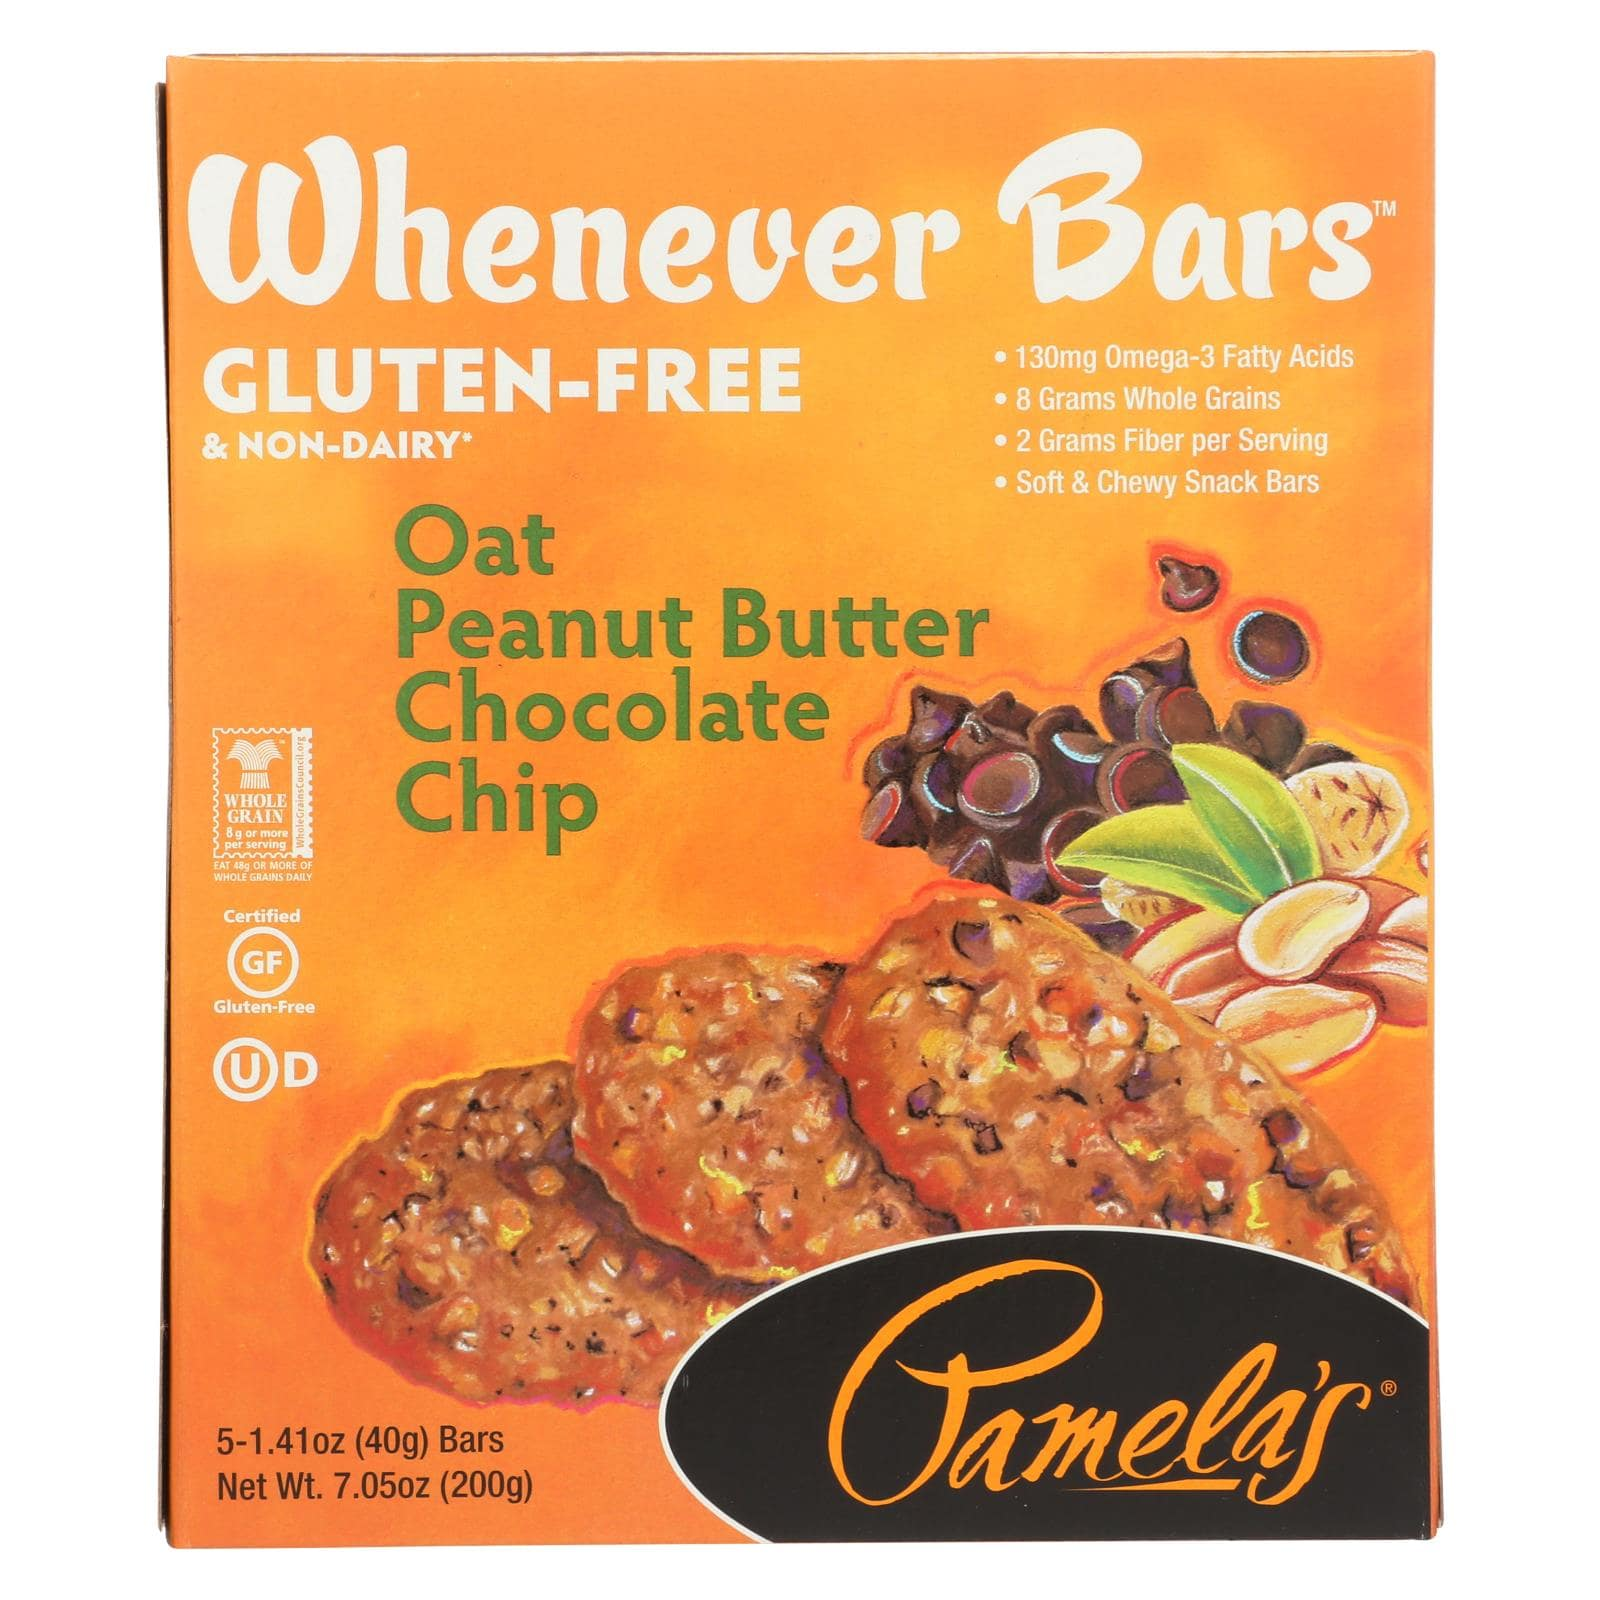 Whenever Bars - Peanut Butter Chocolate Chip